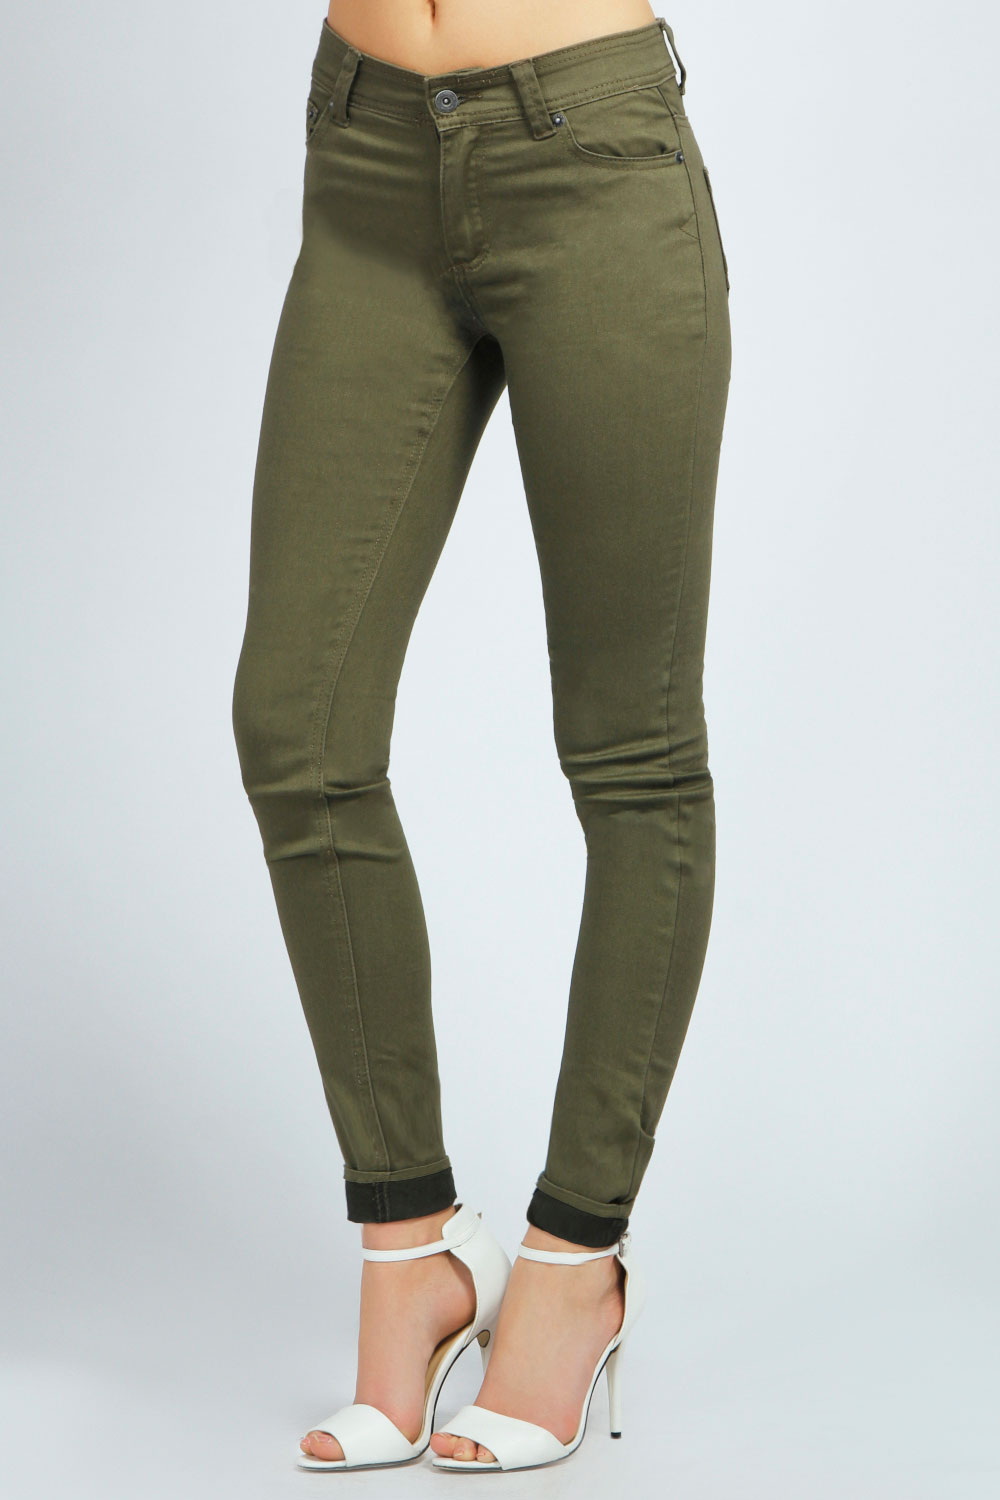 Coloured Jeans Womens